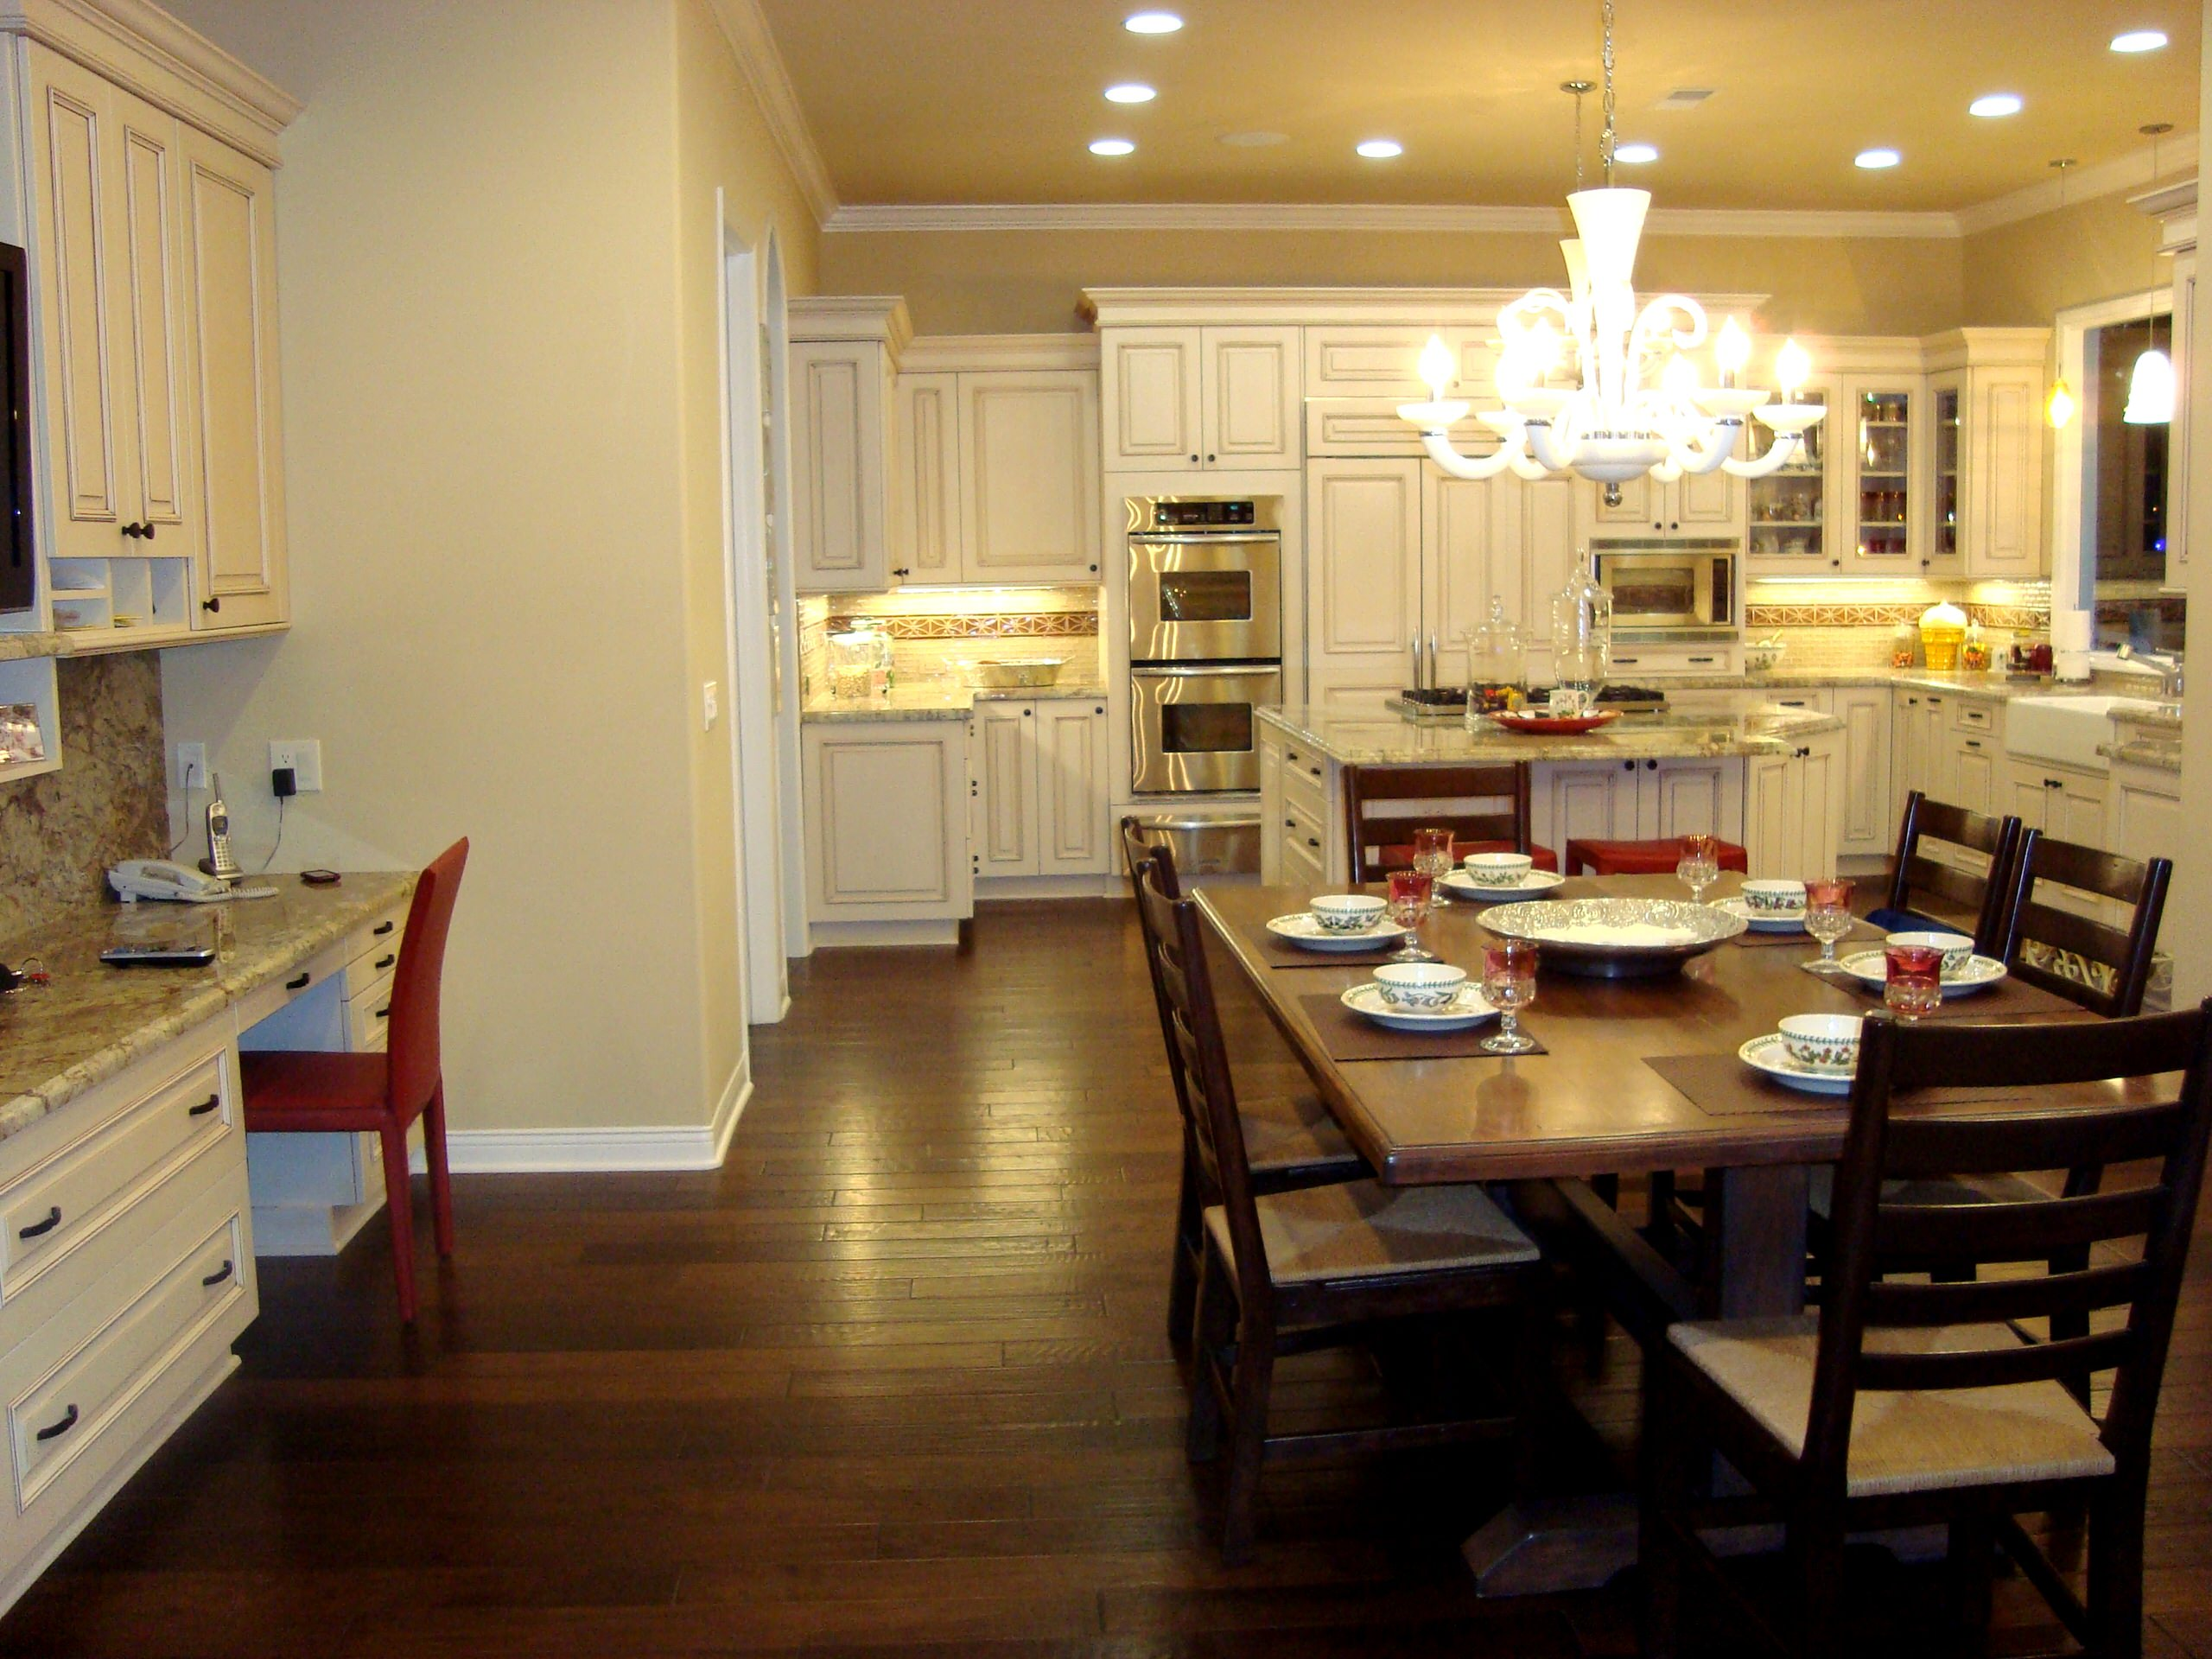 The Nolan Kitchen In Brookhaven Cabinetry, and adjacent desk/office area.